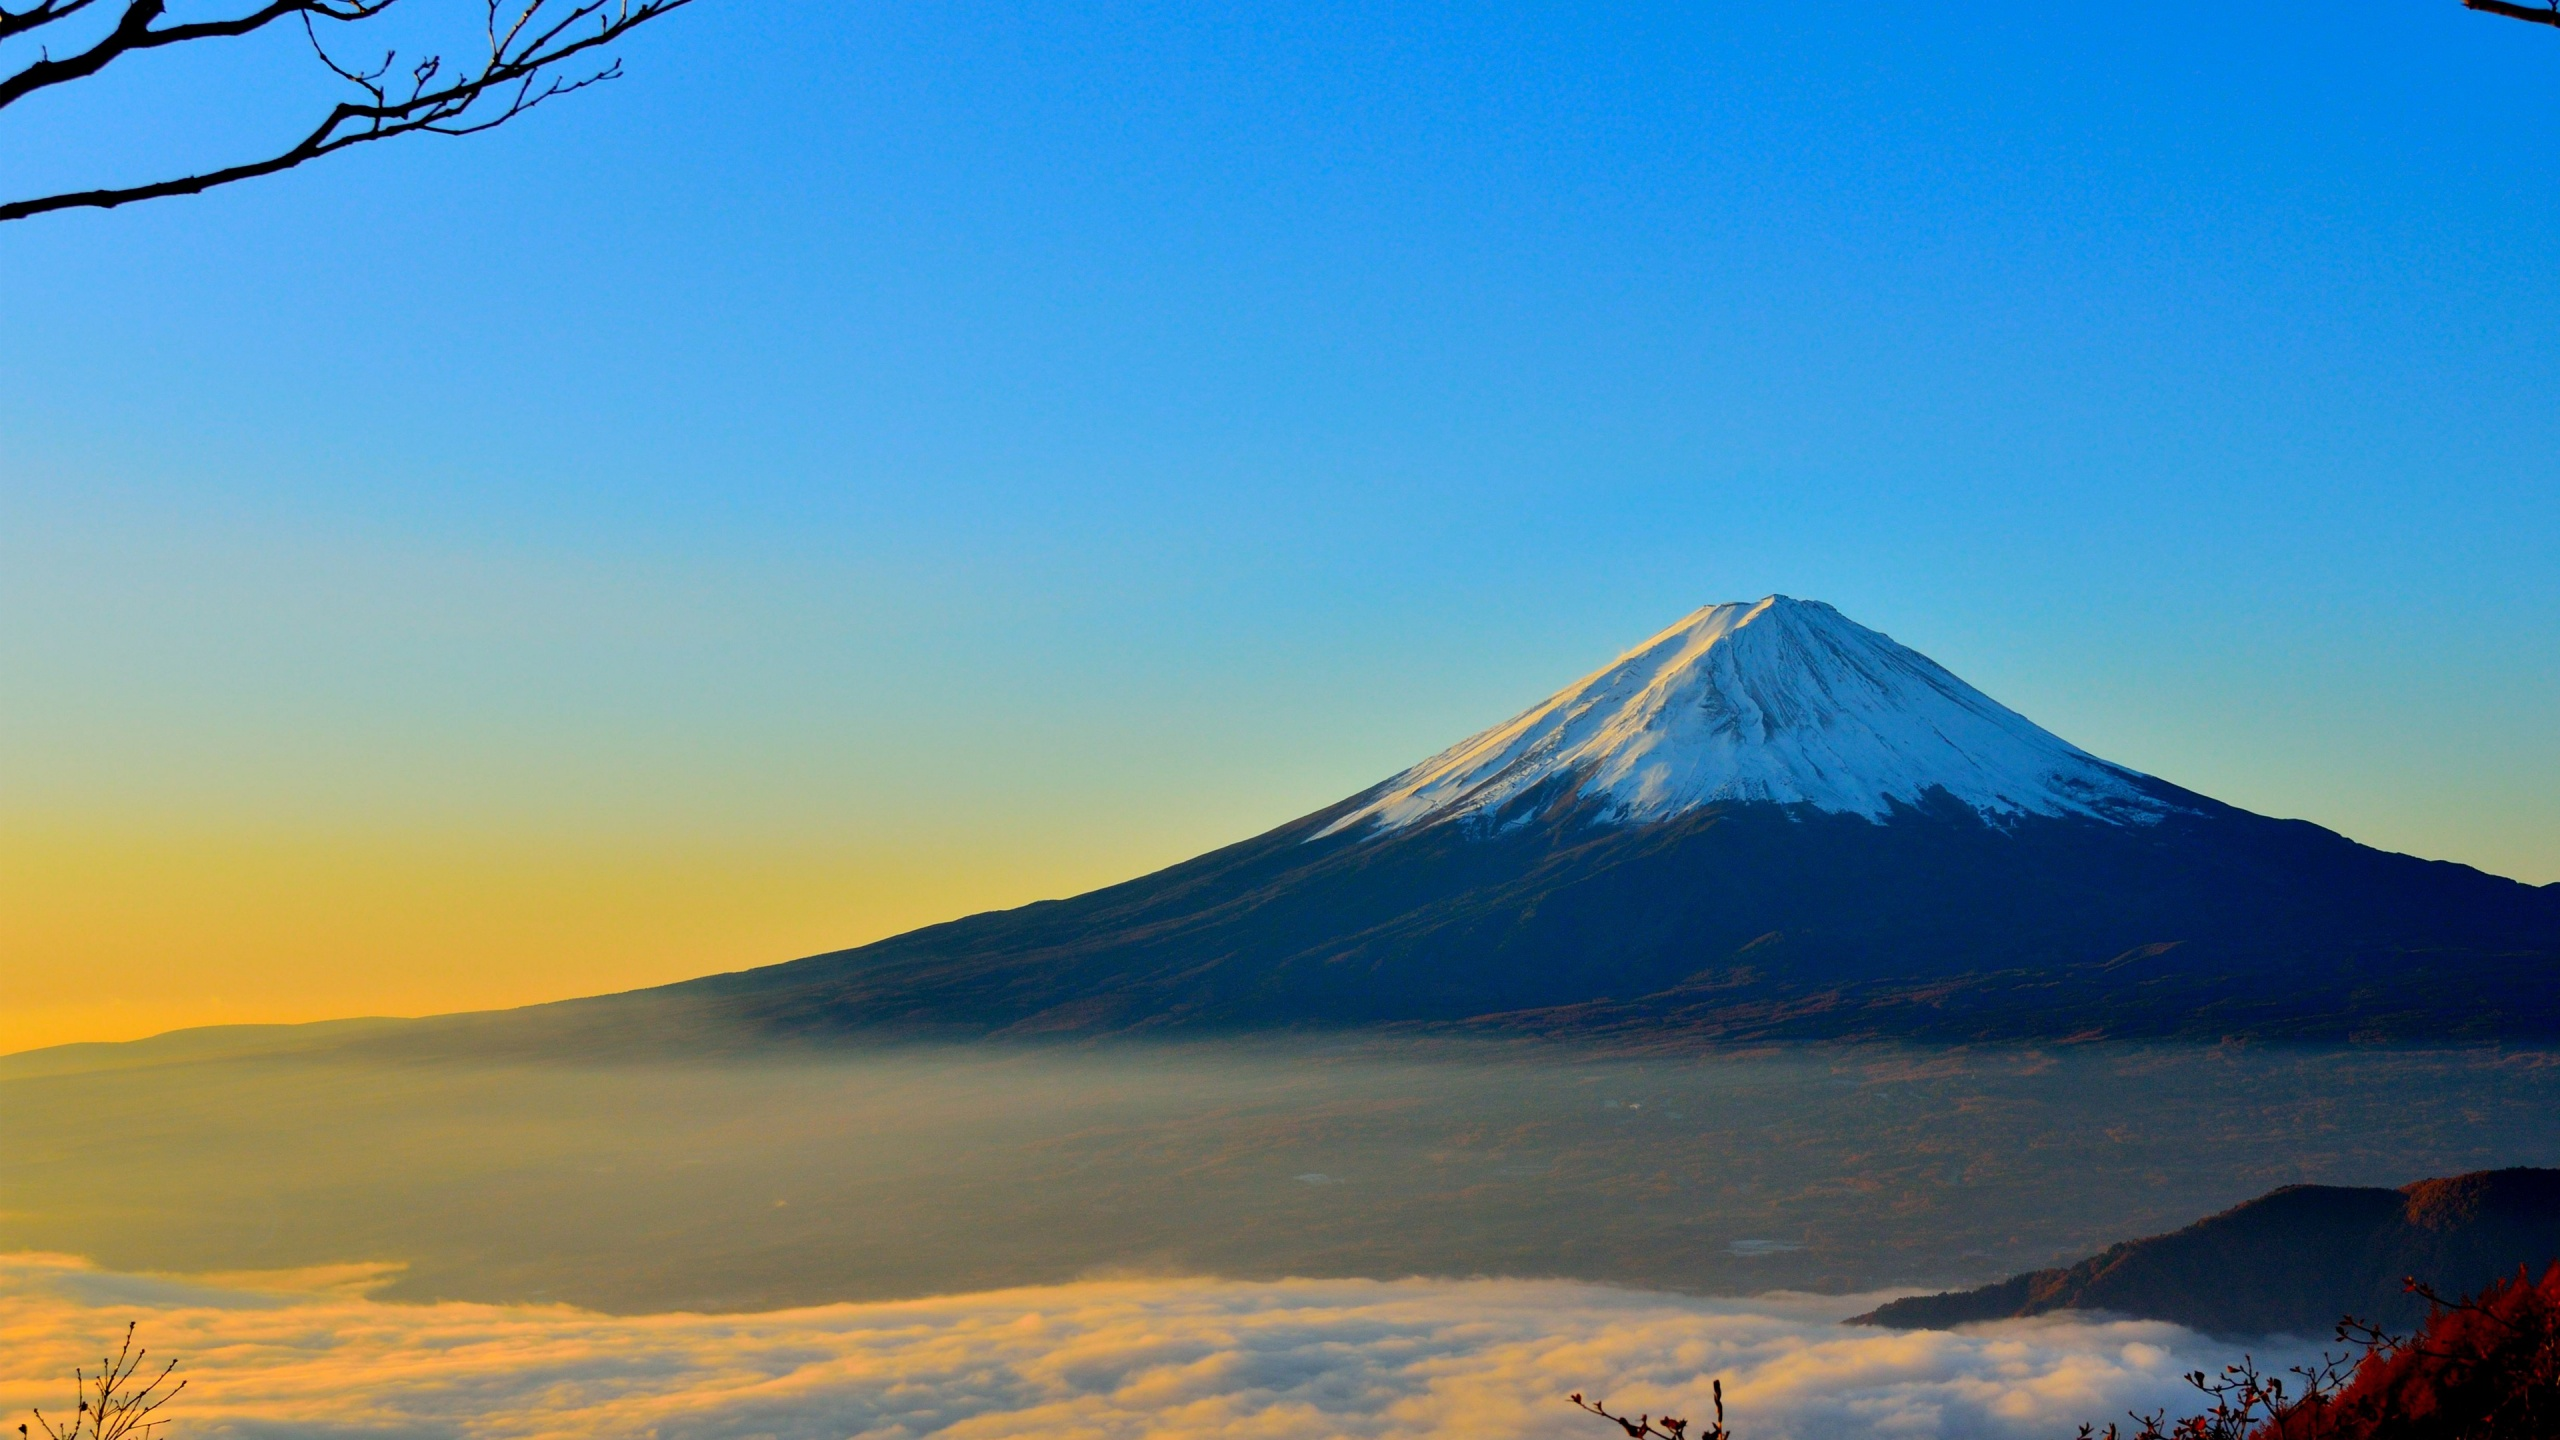 Mount Fuji [1920x1080] wallpapers 2560x1440